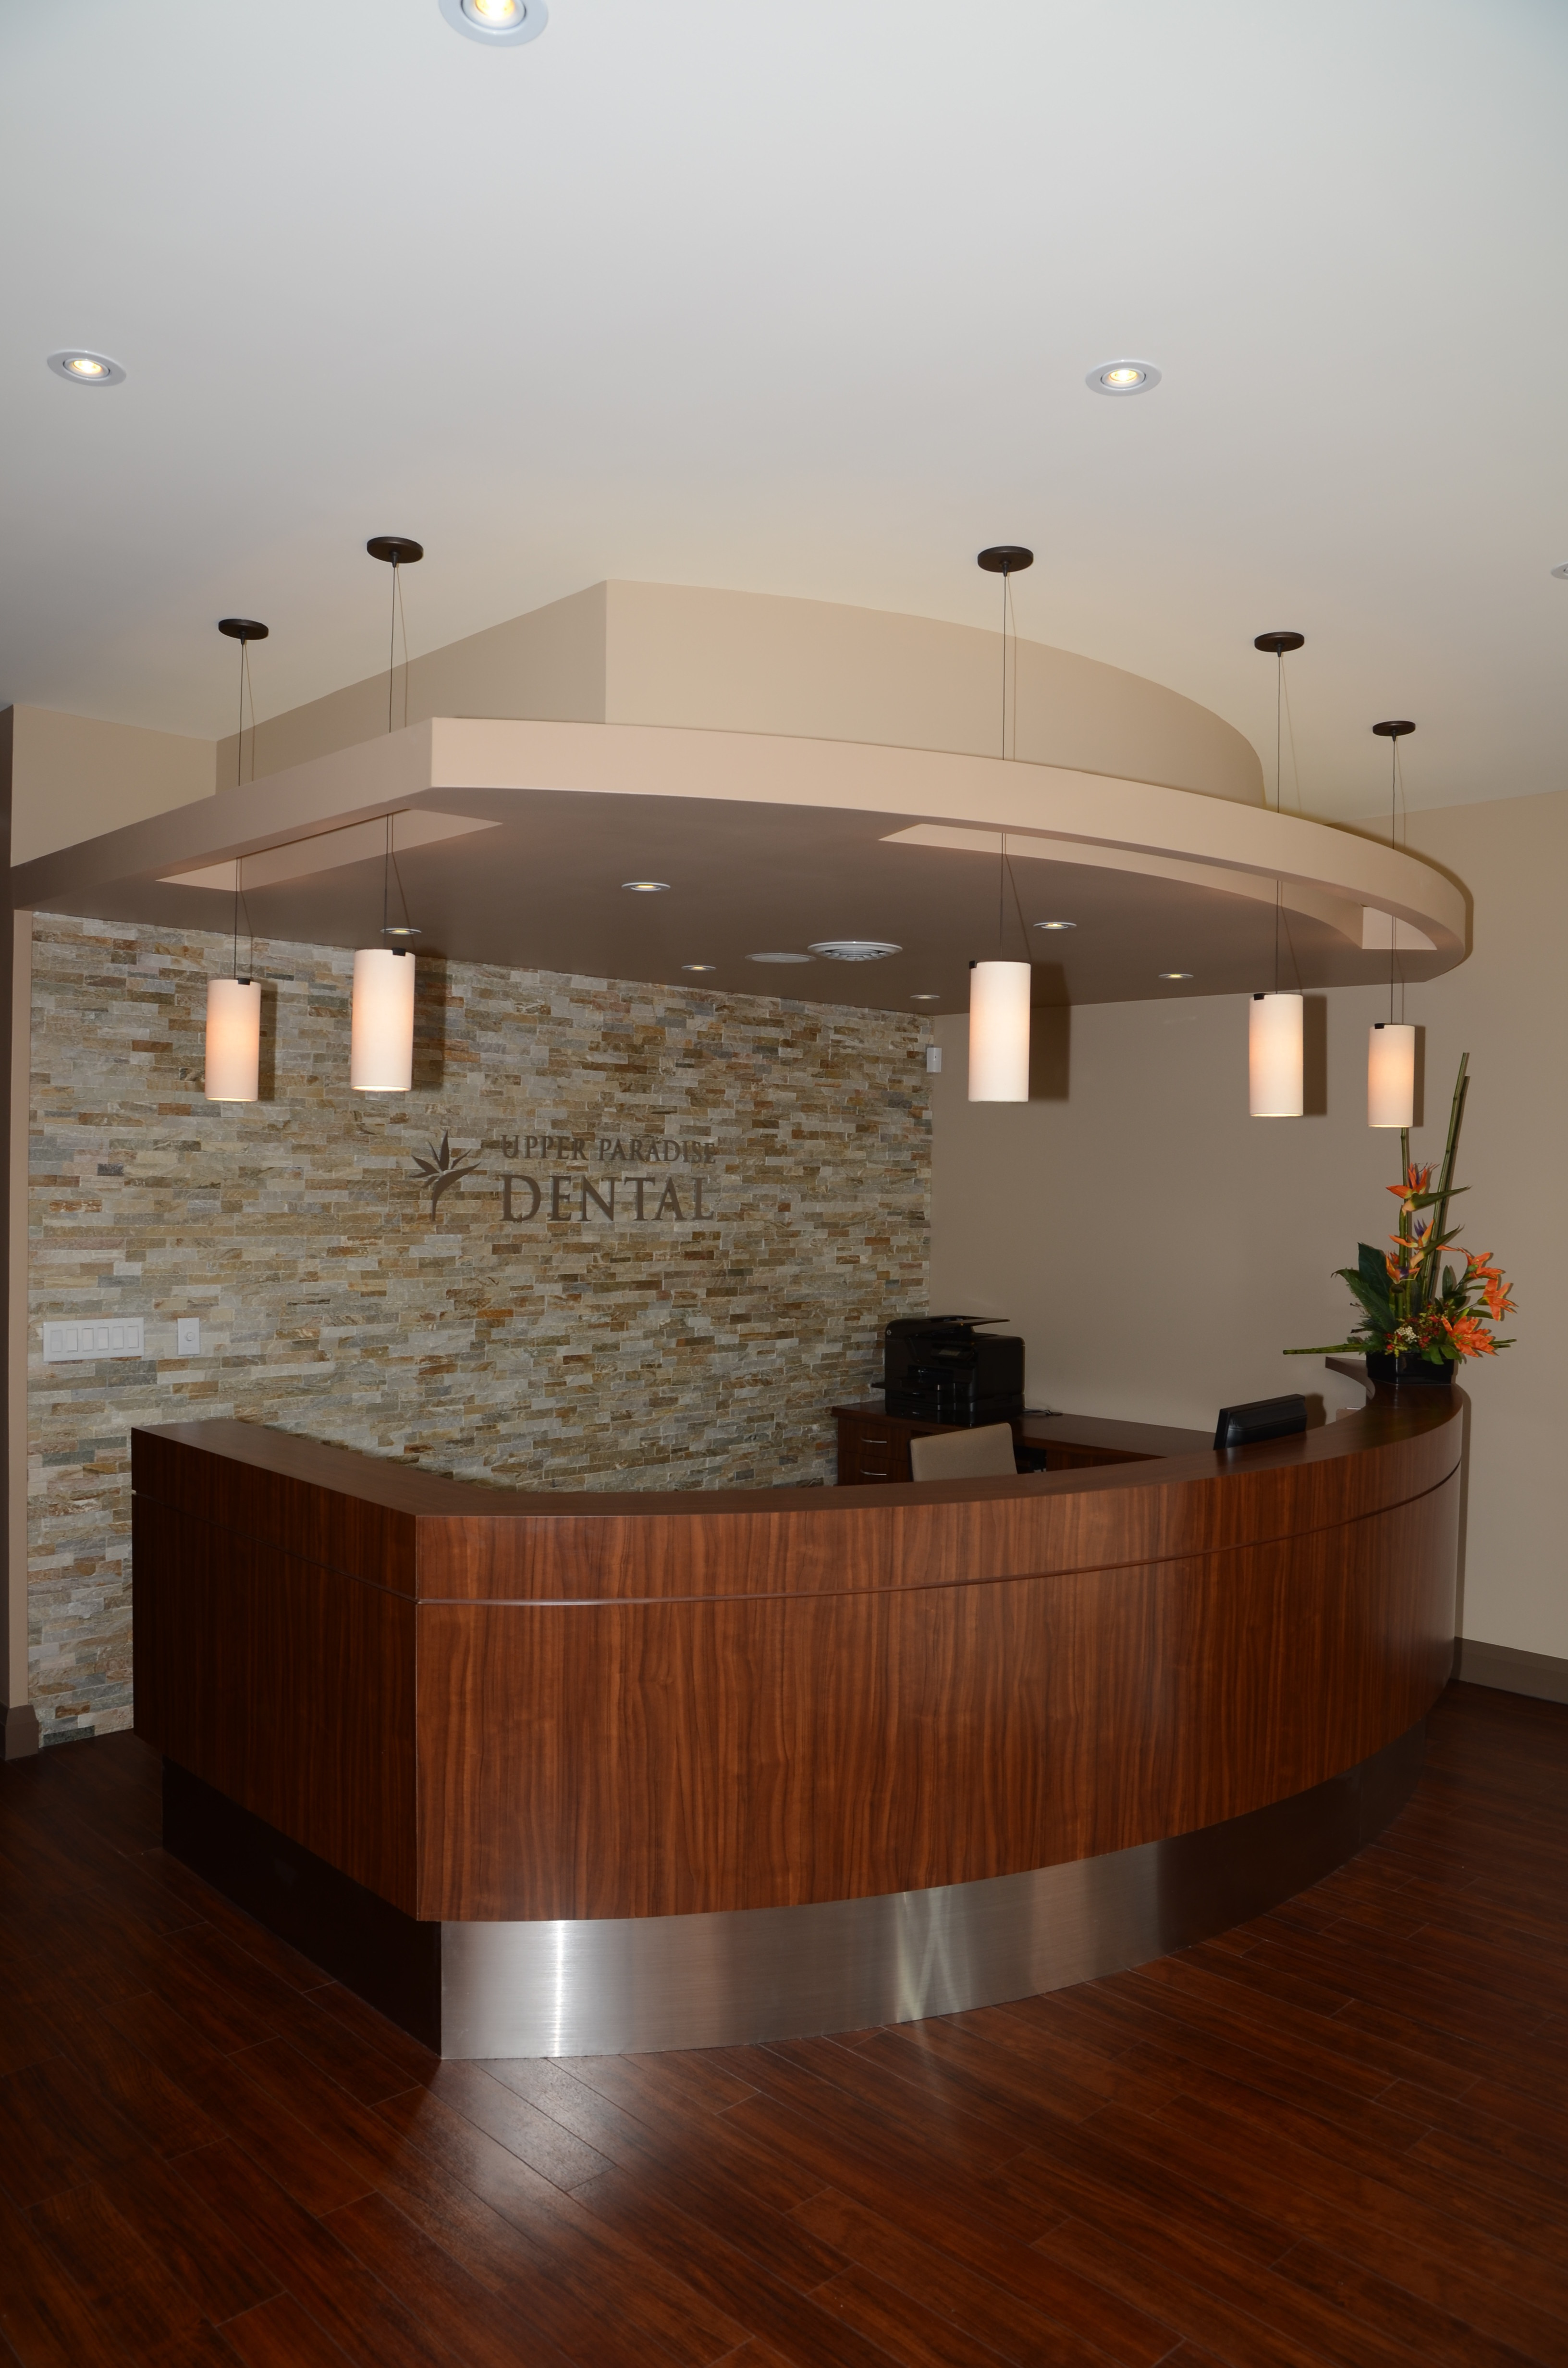 We will be ready to greet you with a smile at your first appointment at Upper Paradise Dental.